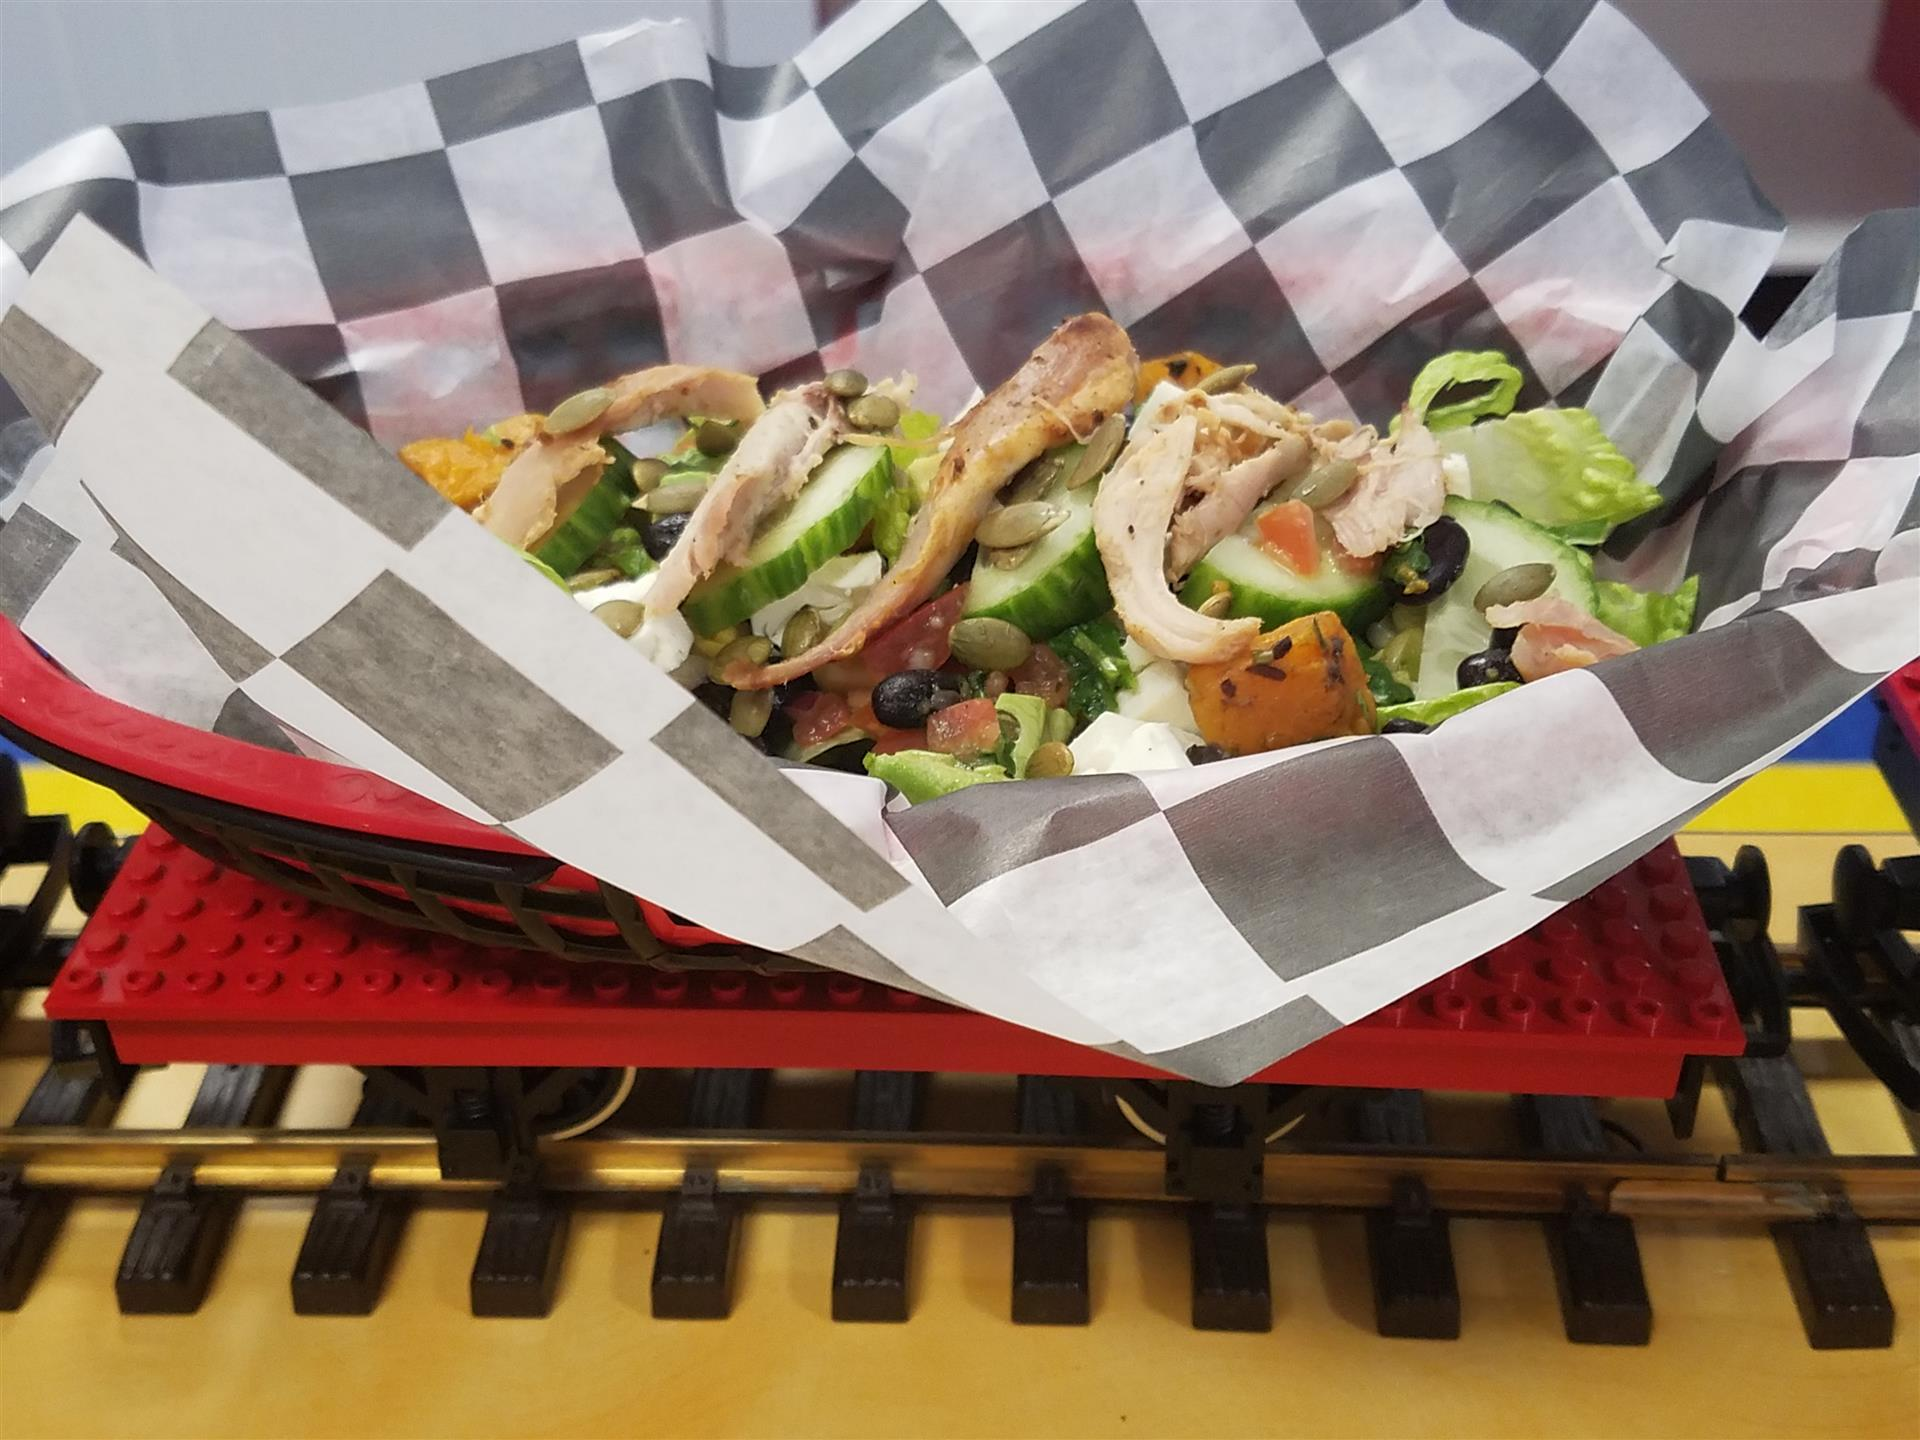 In Addition To A Little Conductoru0027s Menu Of Hot Dogs, Burgers, And Grilled  Cheese, Chew Chew Town Will Offer Four Varieties Of U201cLoading Dock Nachosu201d  ...